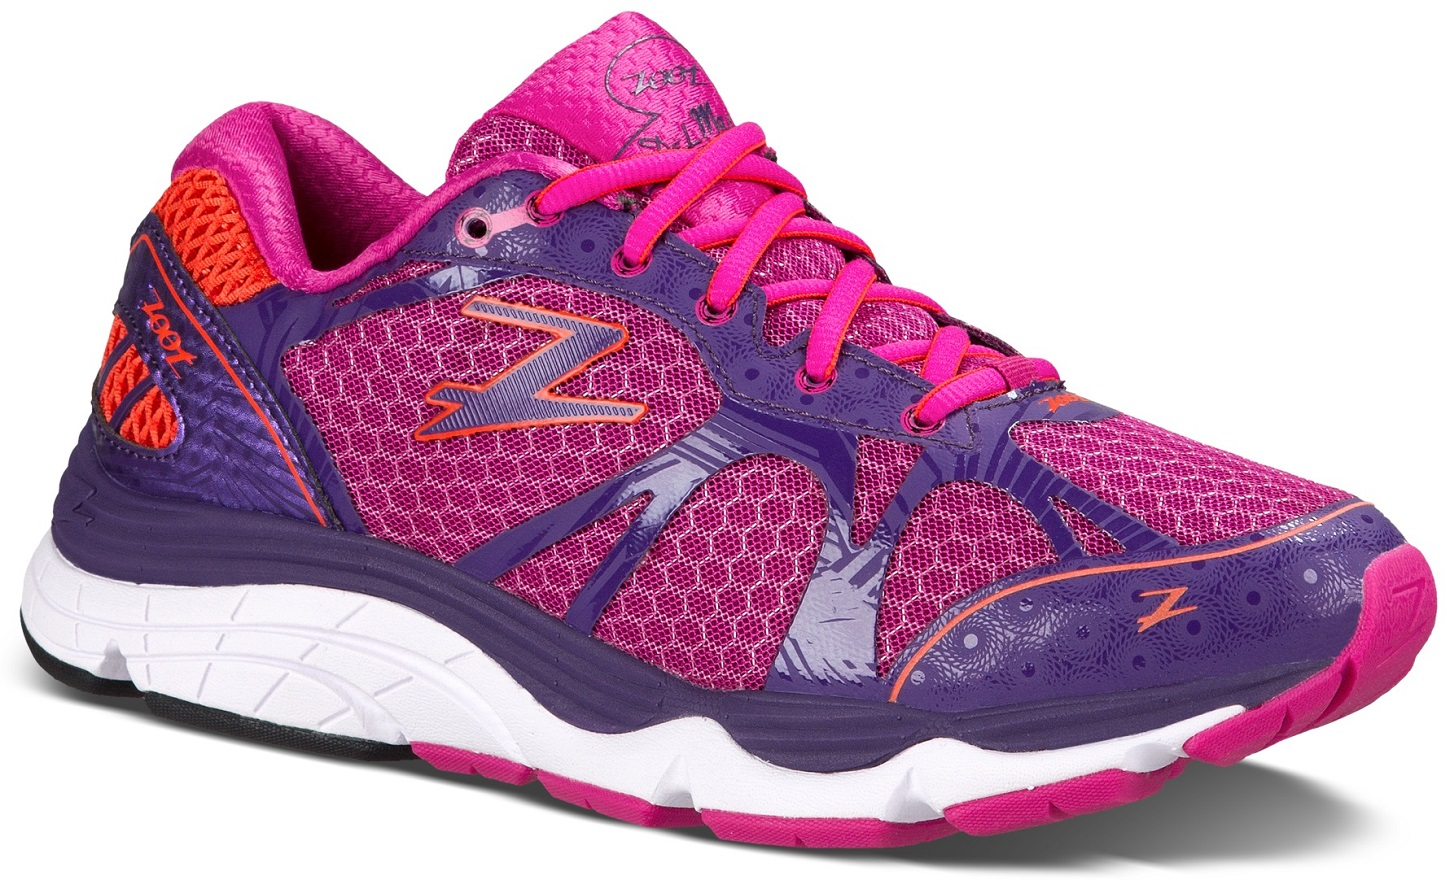 Discount Running Shoes Tucson